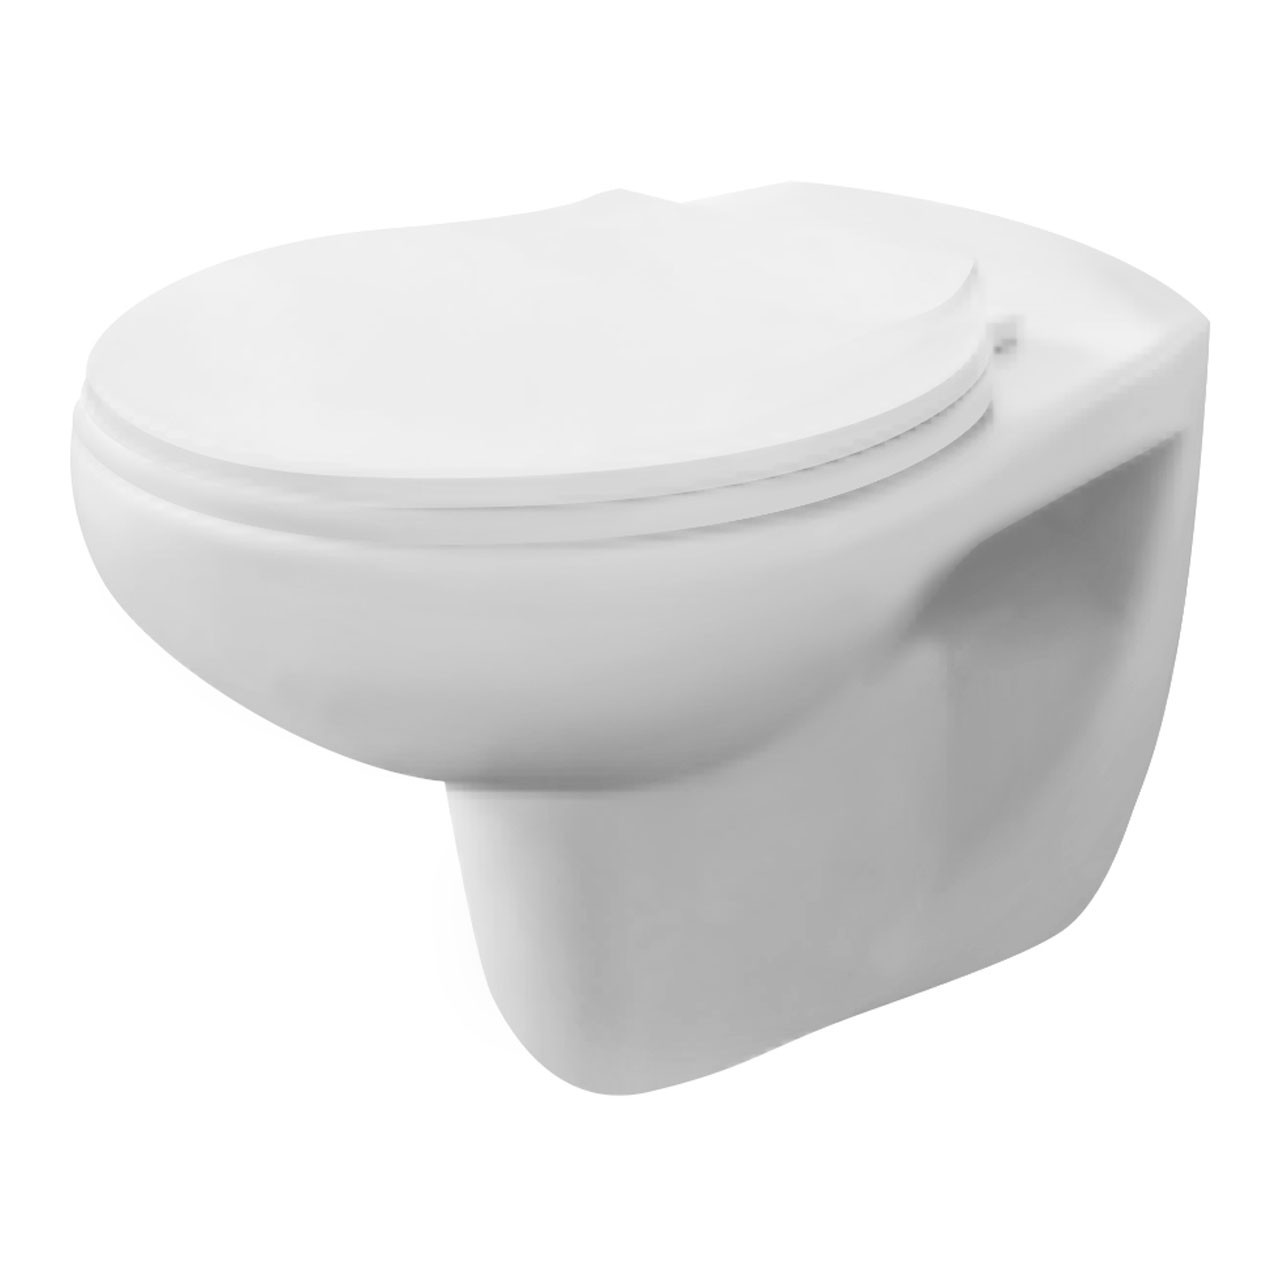 Nuie Melbourne Wall Hung Toilet Pan - NCS140